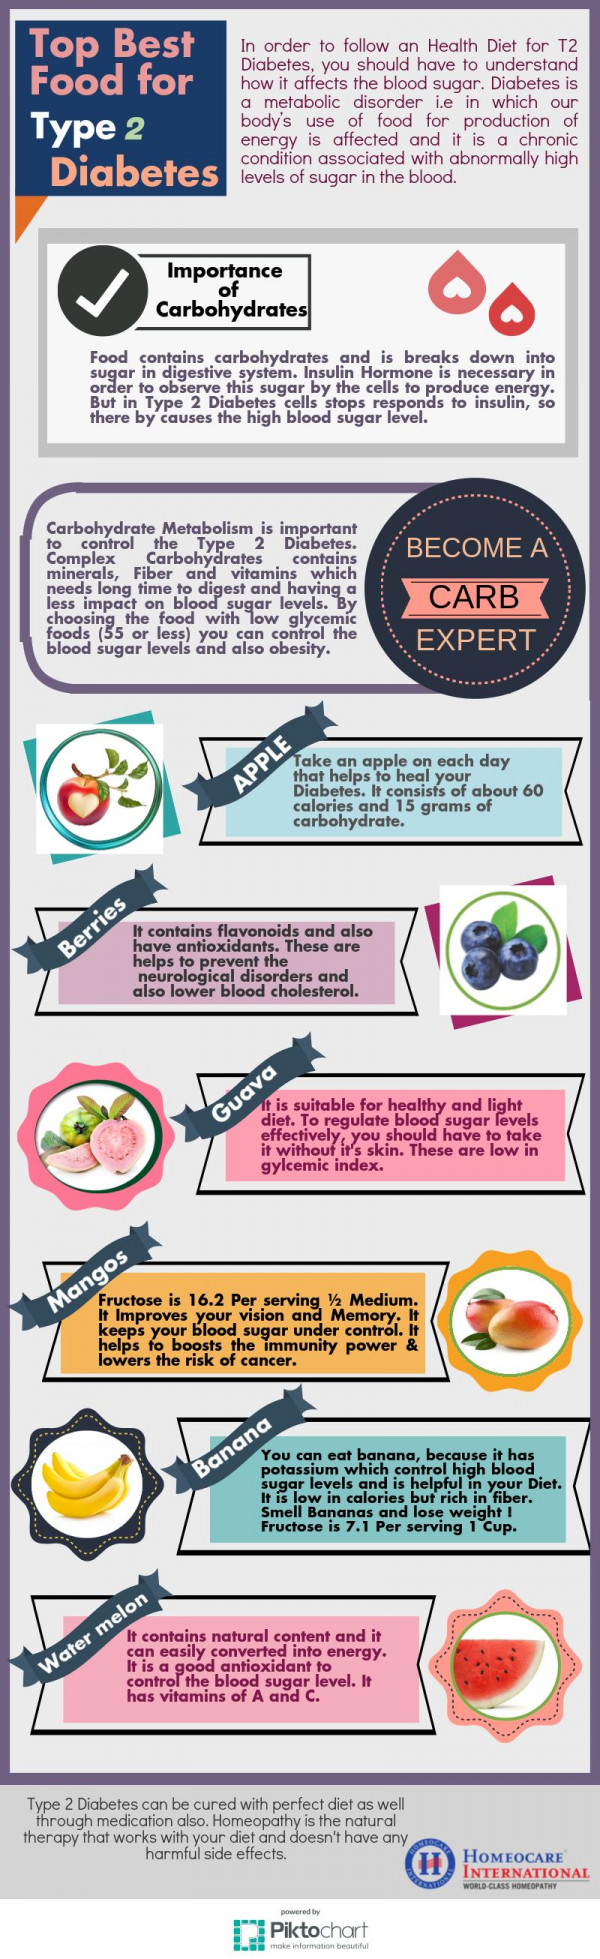 A Healthy Diet for Type 2 Diabetes – Homeocare International